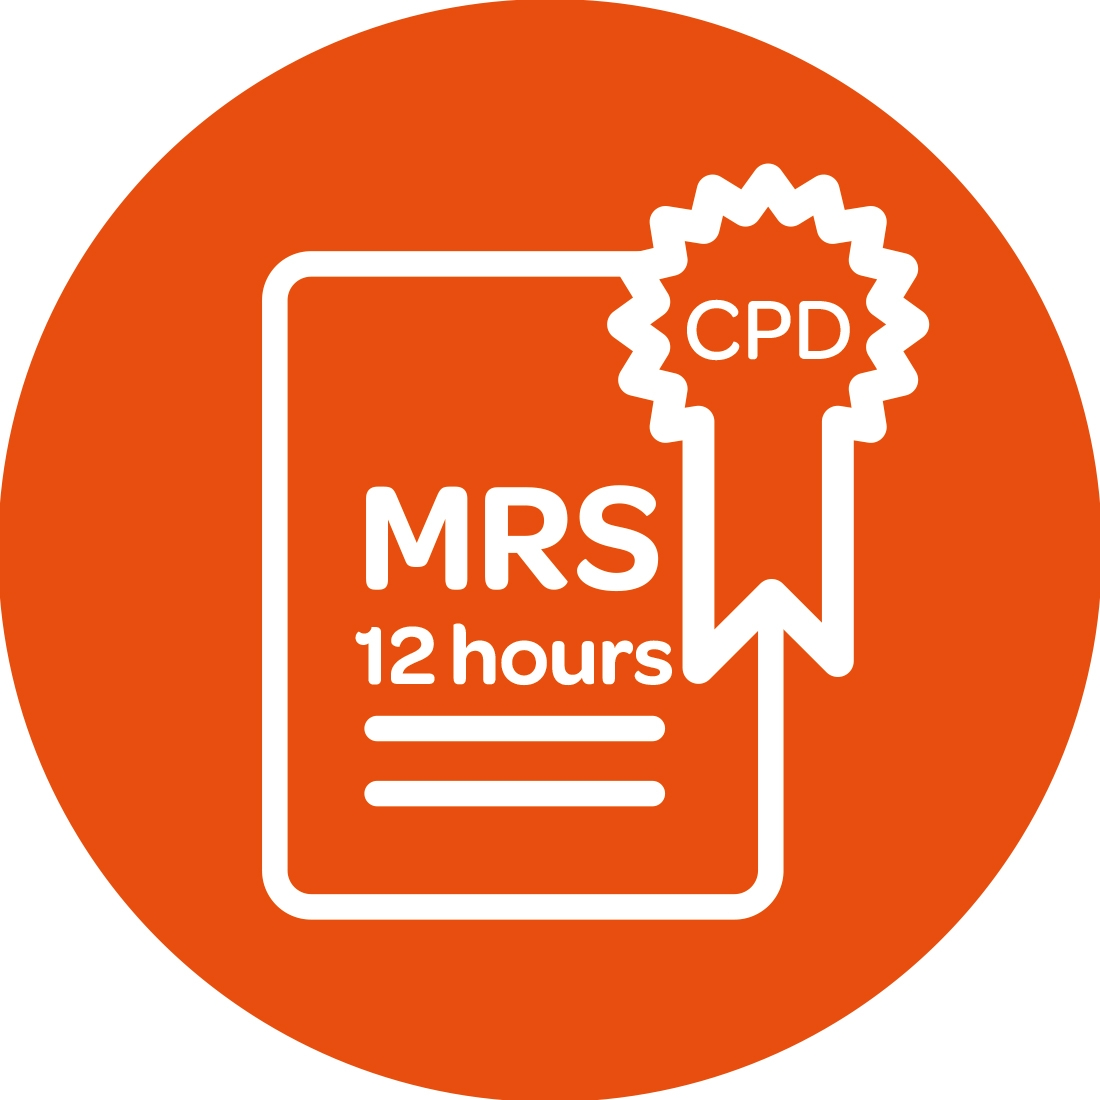 MRS CPD logo 12 hours